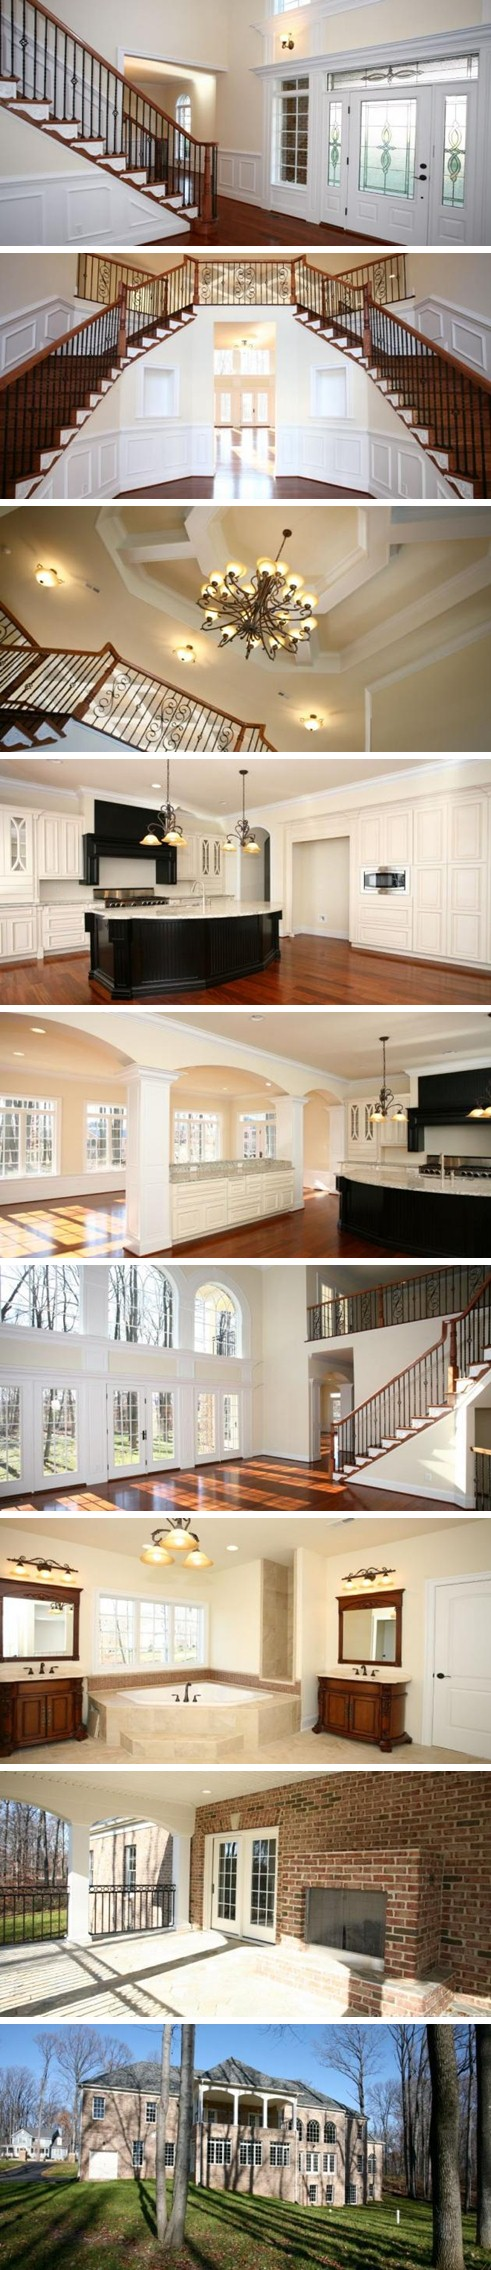 Matt Birk's house Reisterstown Maryland